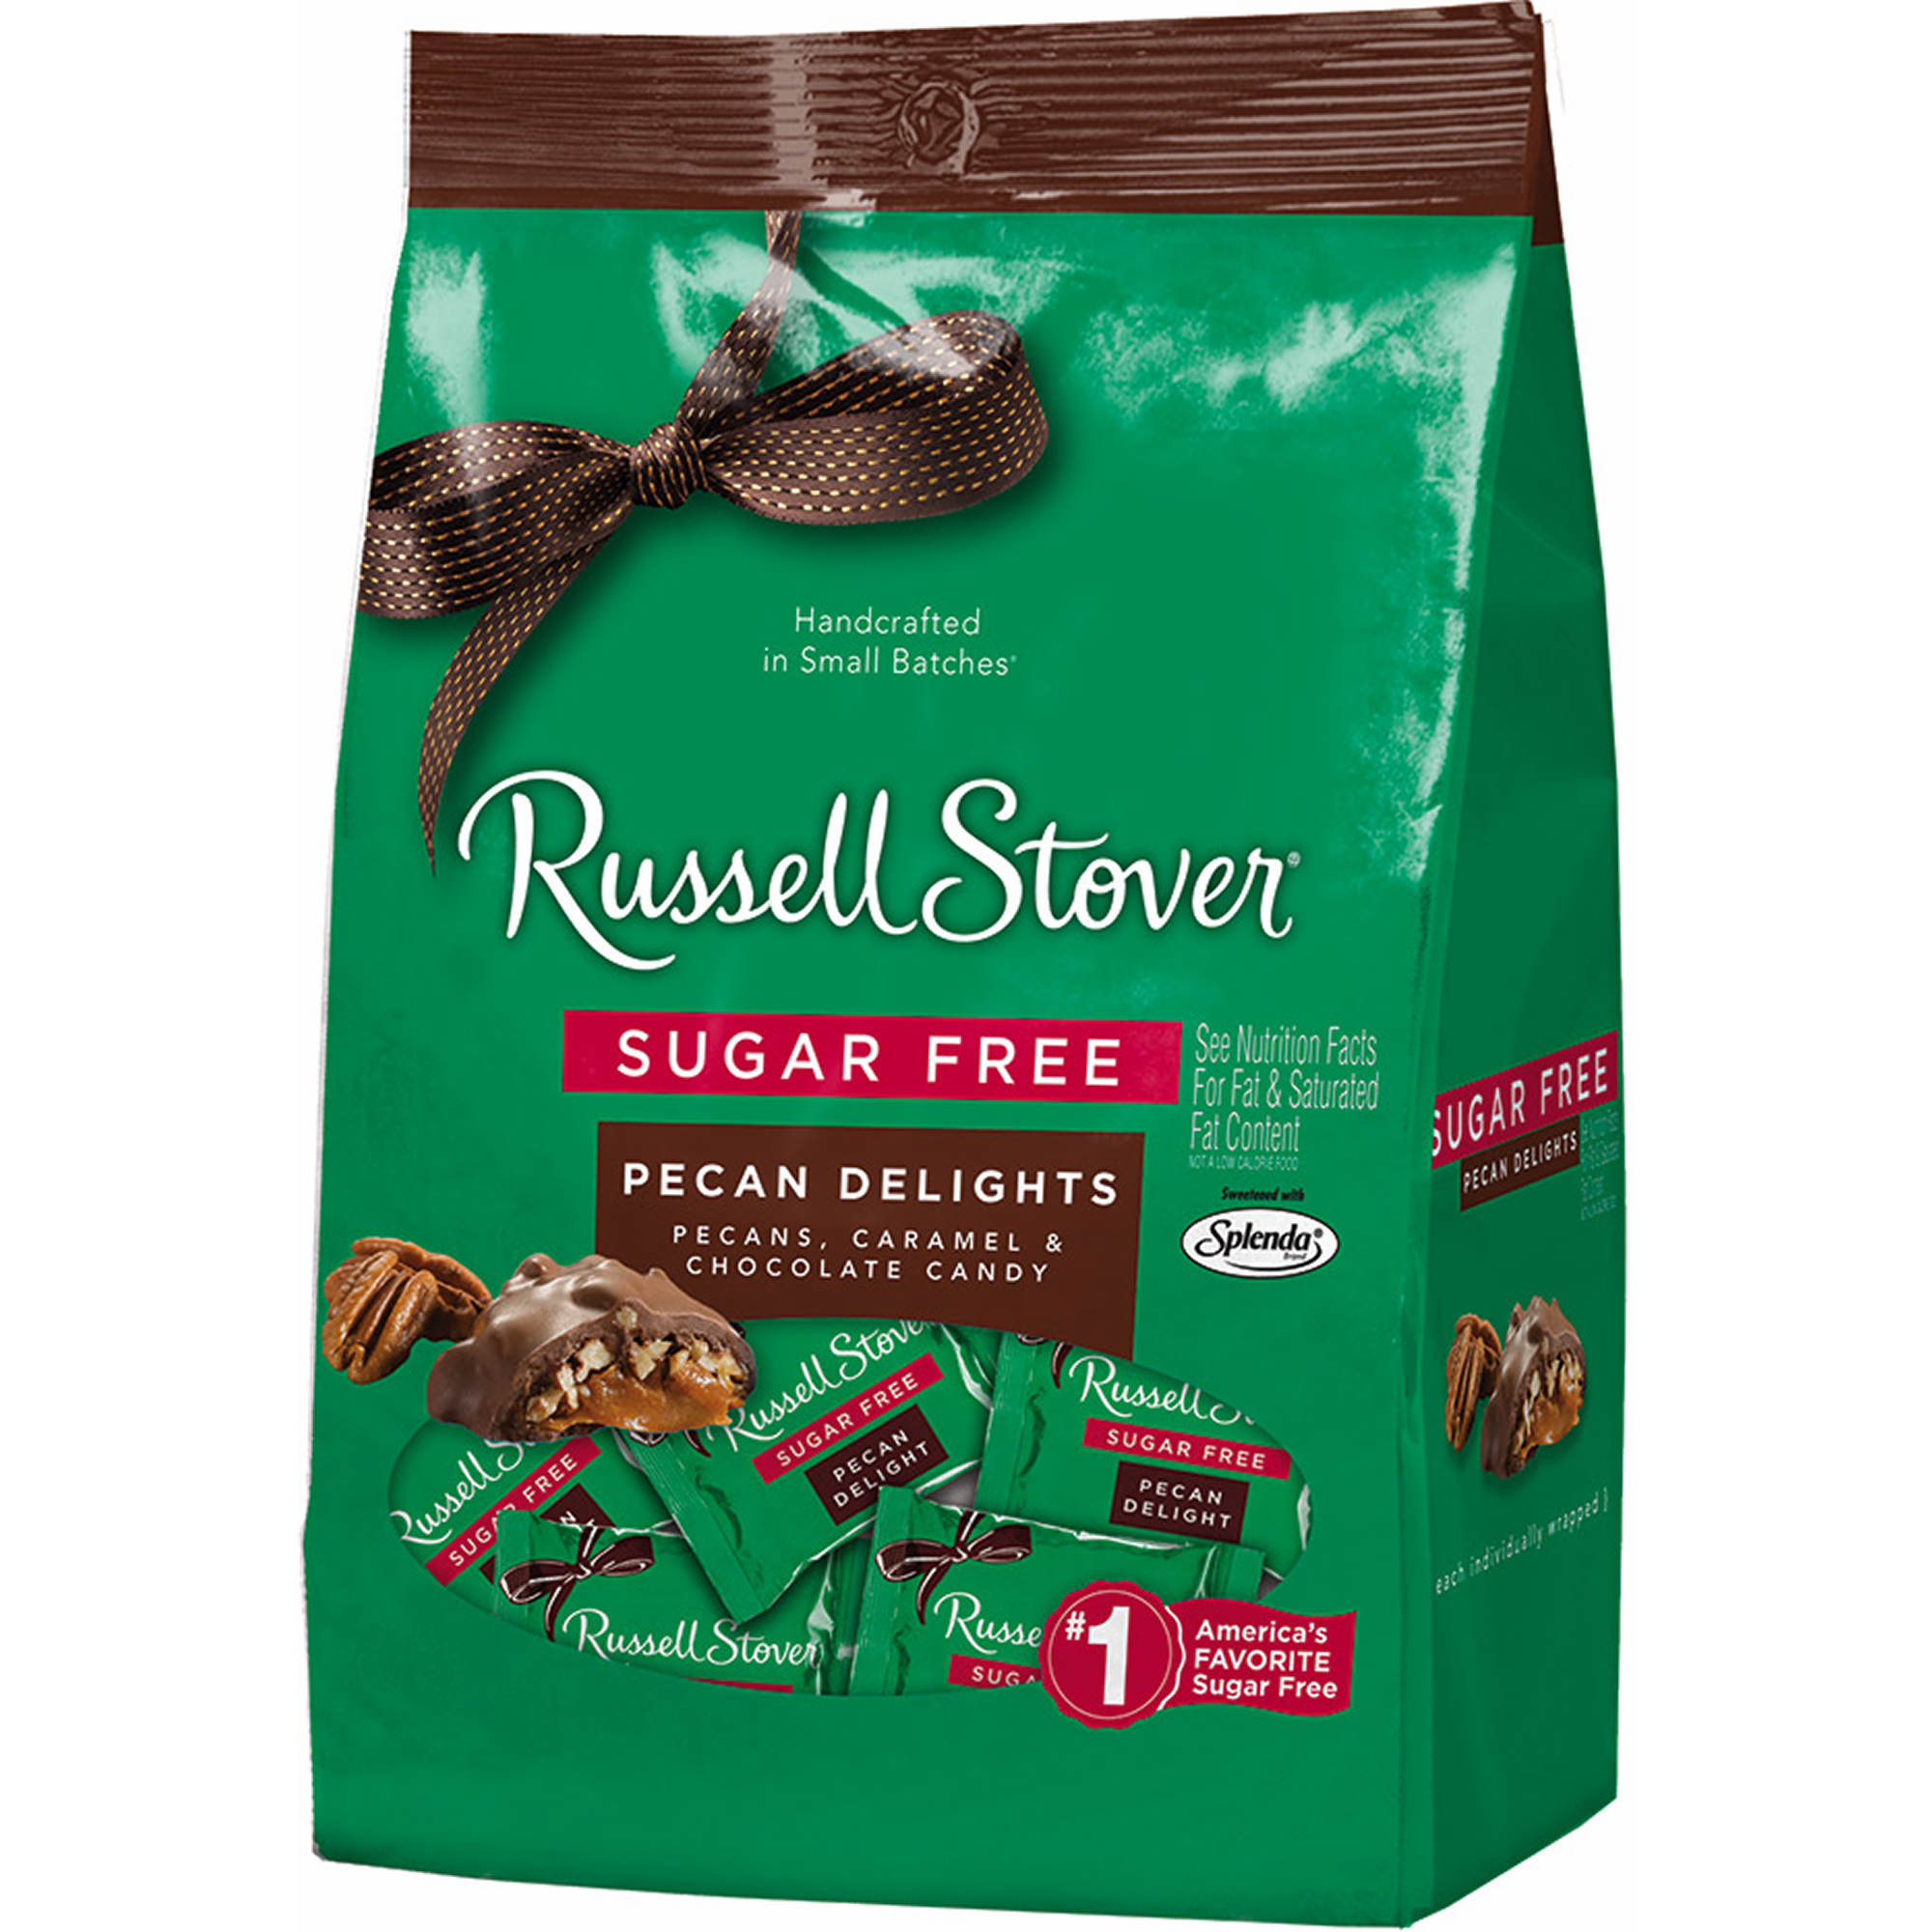 Russell Stover Sugar-Free 4-Flavor Mix, 17.9 oz.